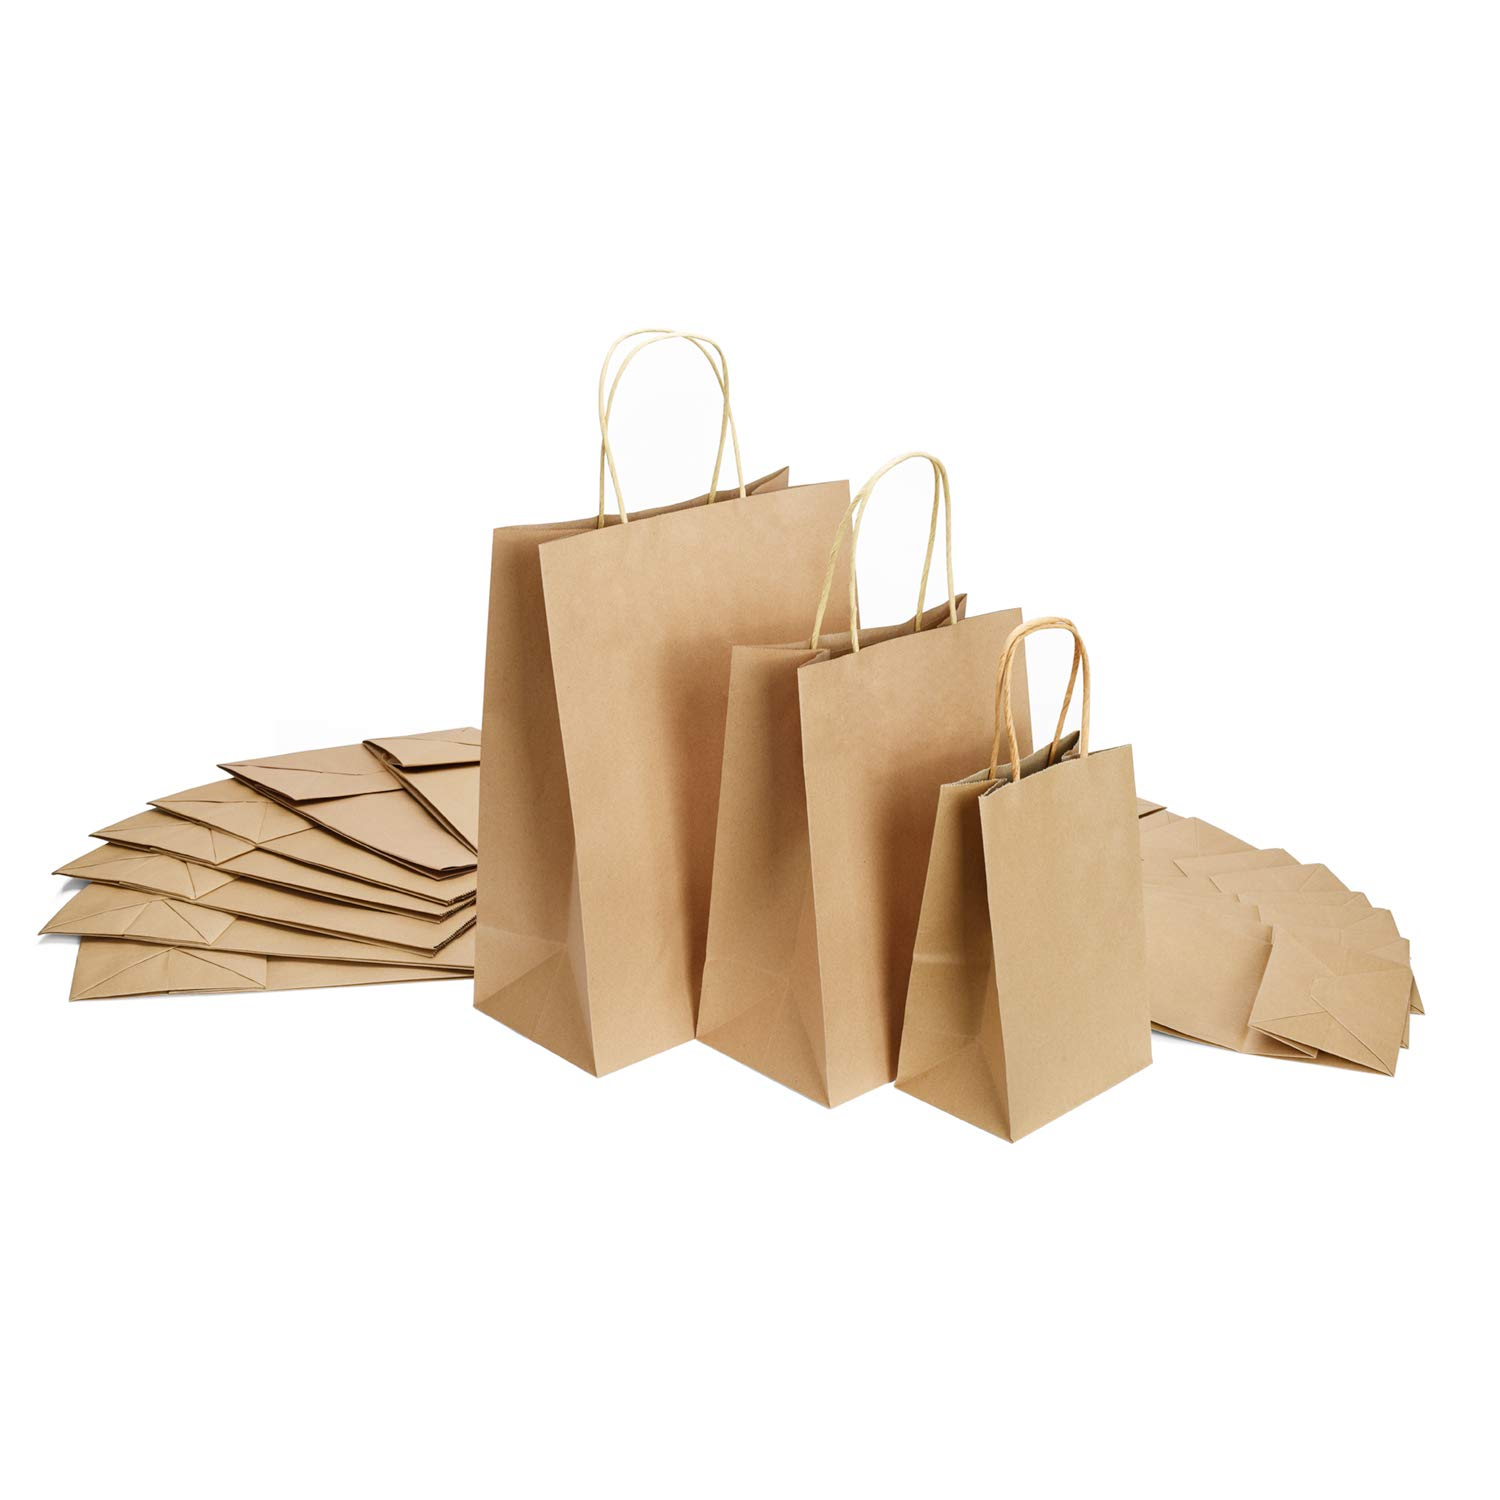 GSSUSA 5x3x8&8x4.75x10&10x5x13-50Pcs Each Size - Halulu Brown Kraft Paper Bags, Shopping, Mechandise, Party, Gift Bags - Total 150Pcs